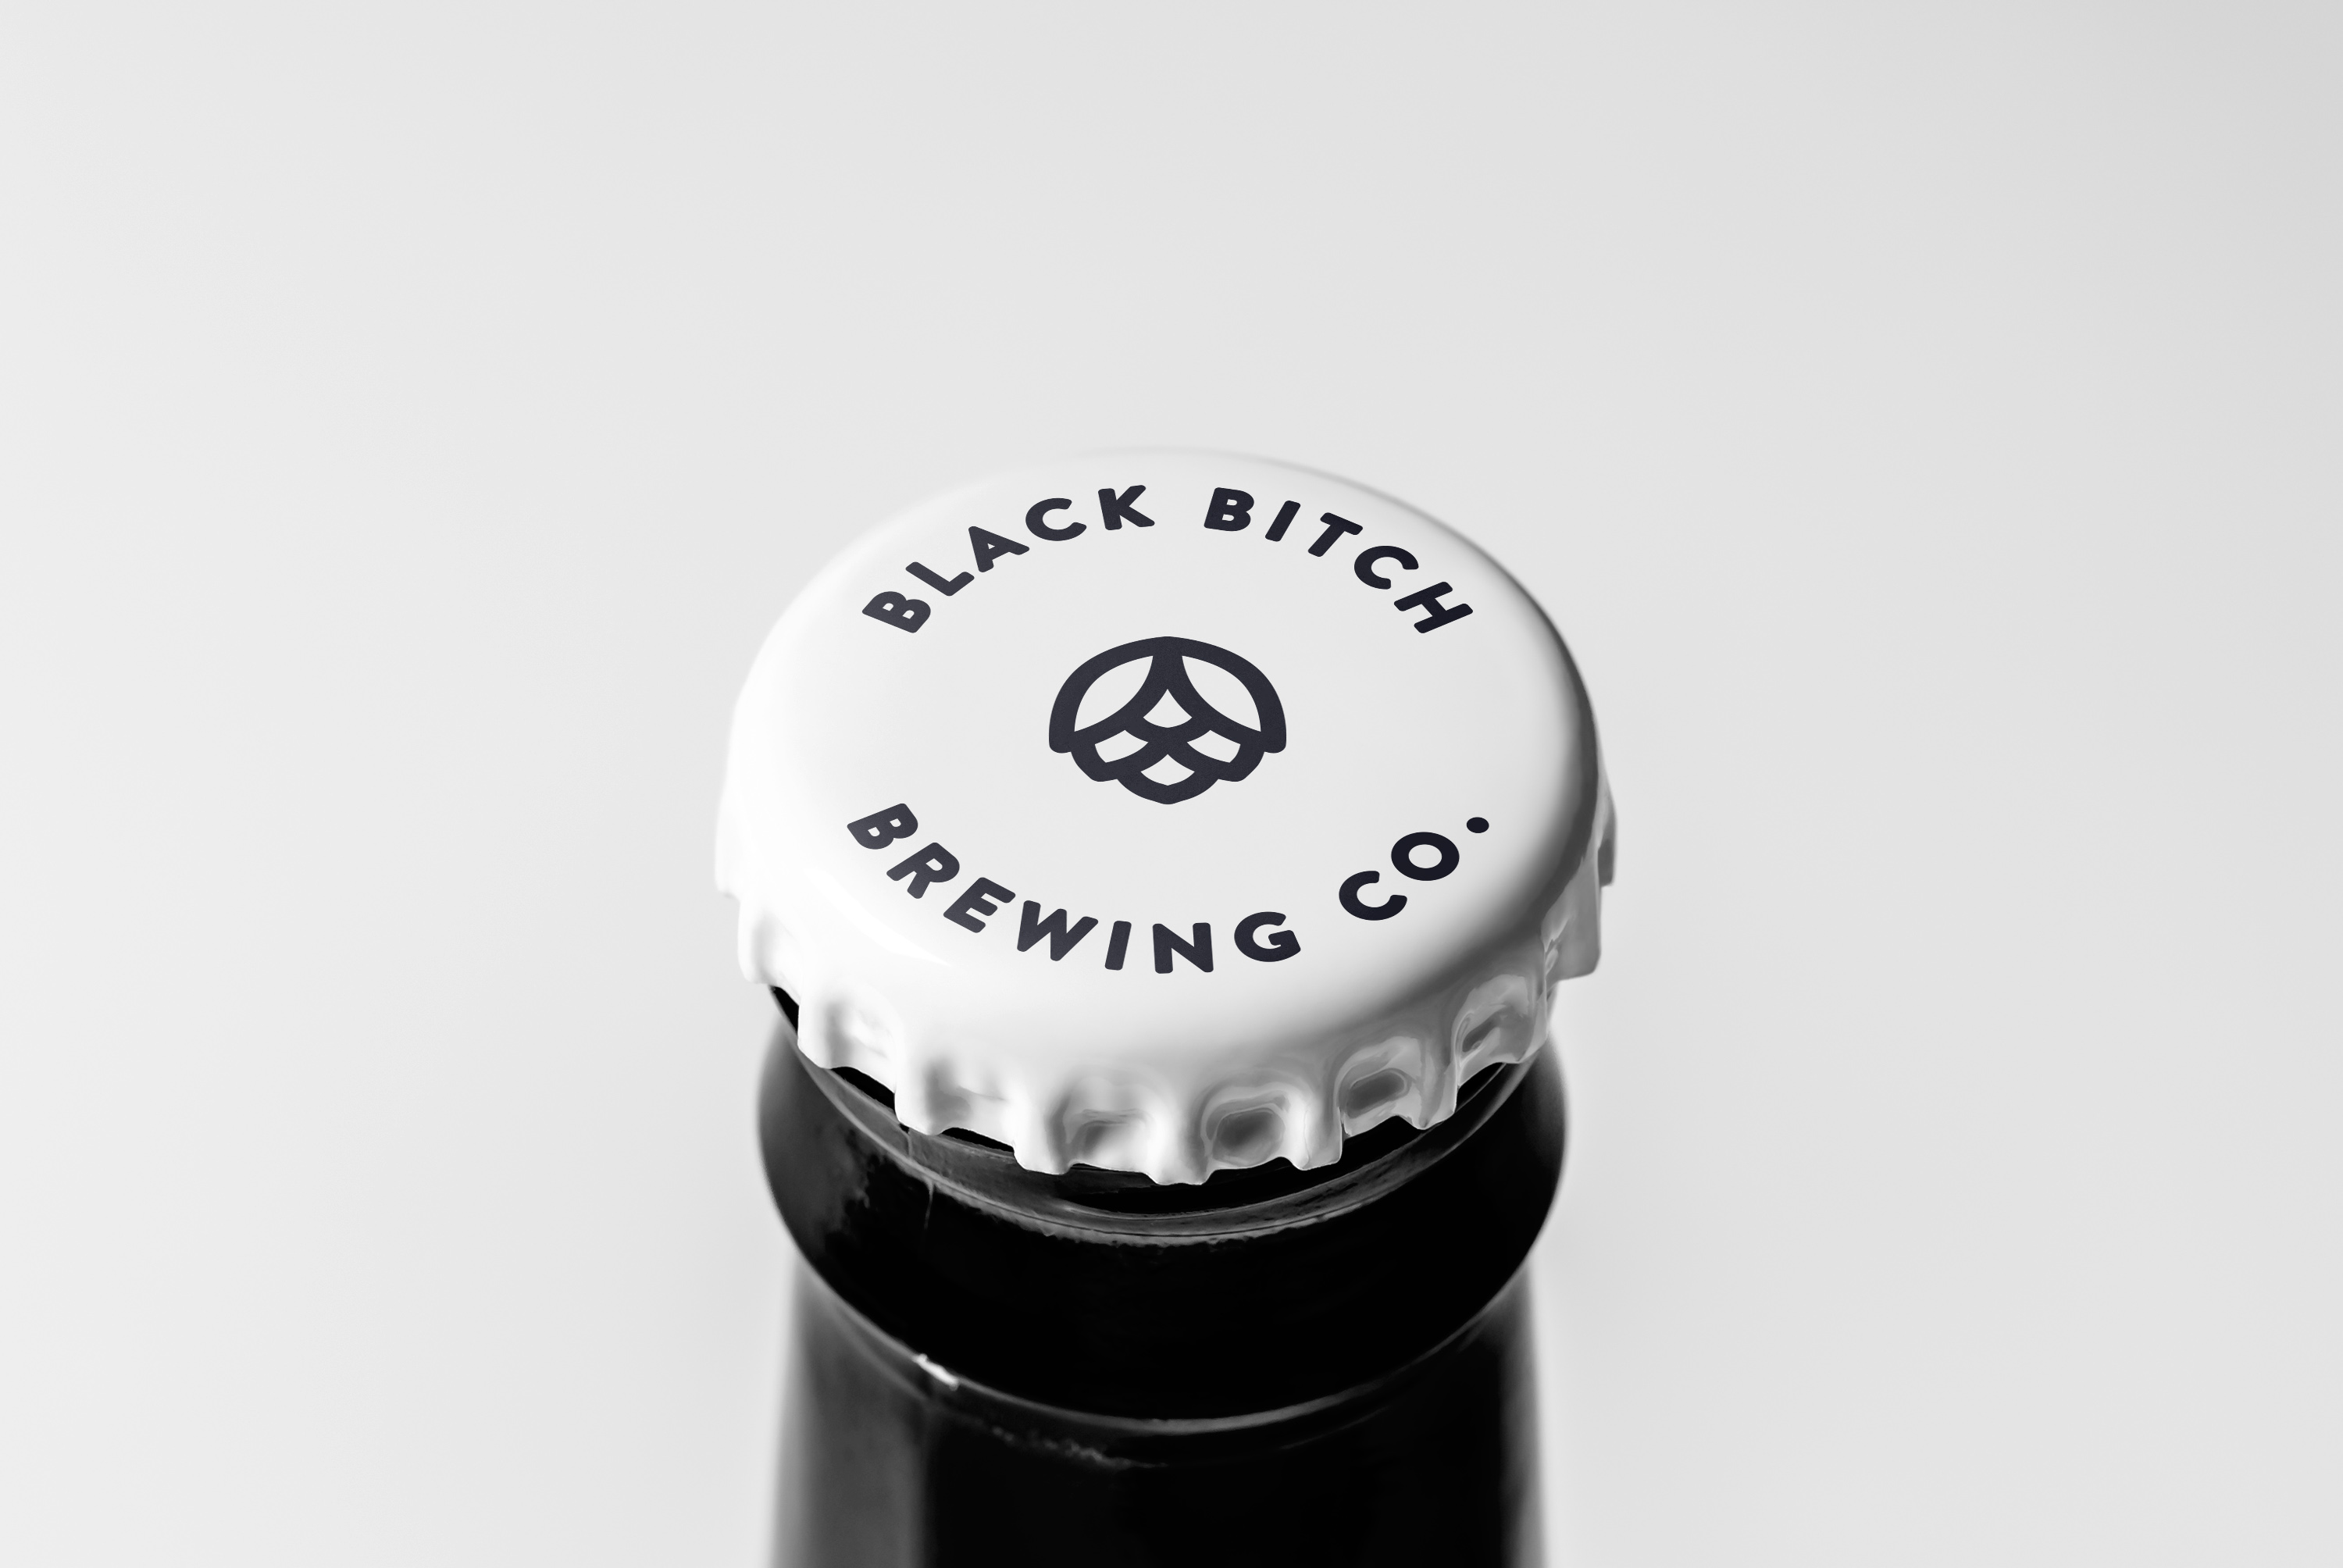 Angry-Bitch-etiqueta-diseño-santander-rafa-san-emeterio-black-white-packaging-illustration-zombi-terror-cap-bottle